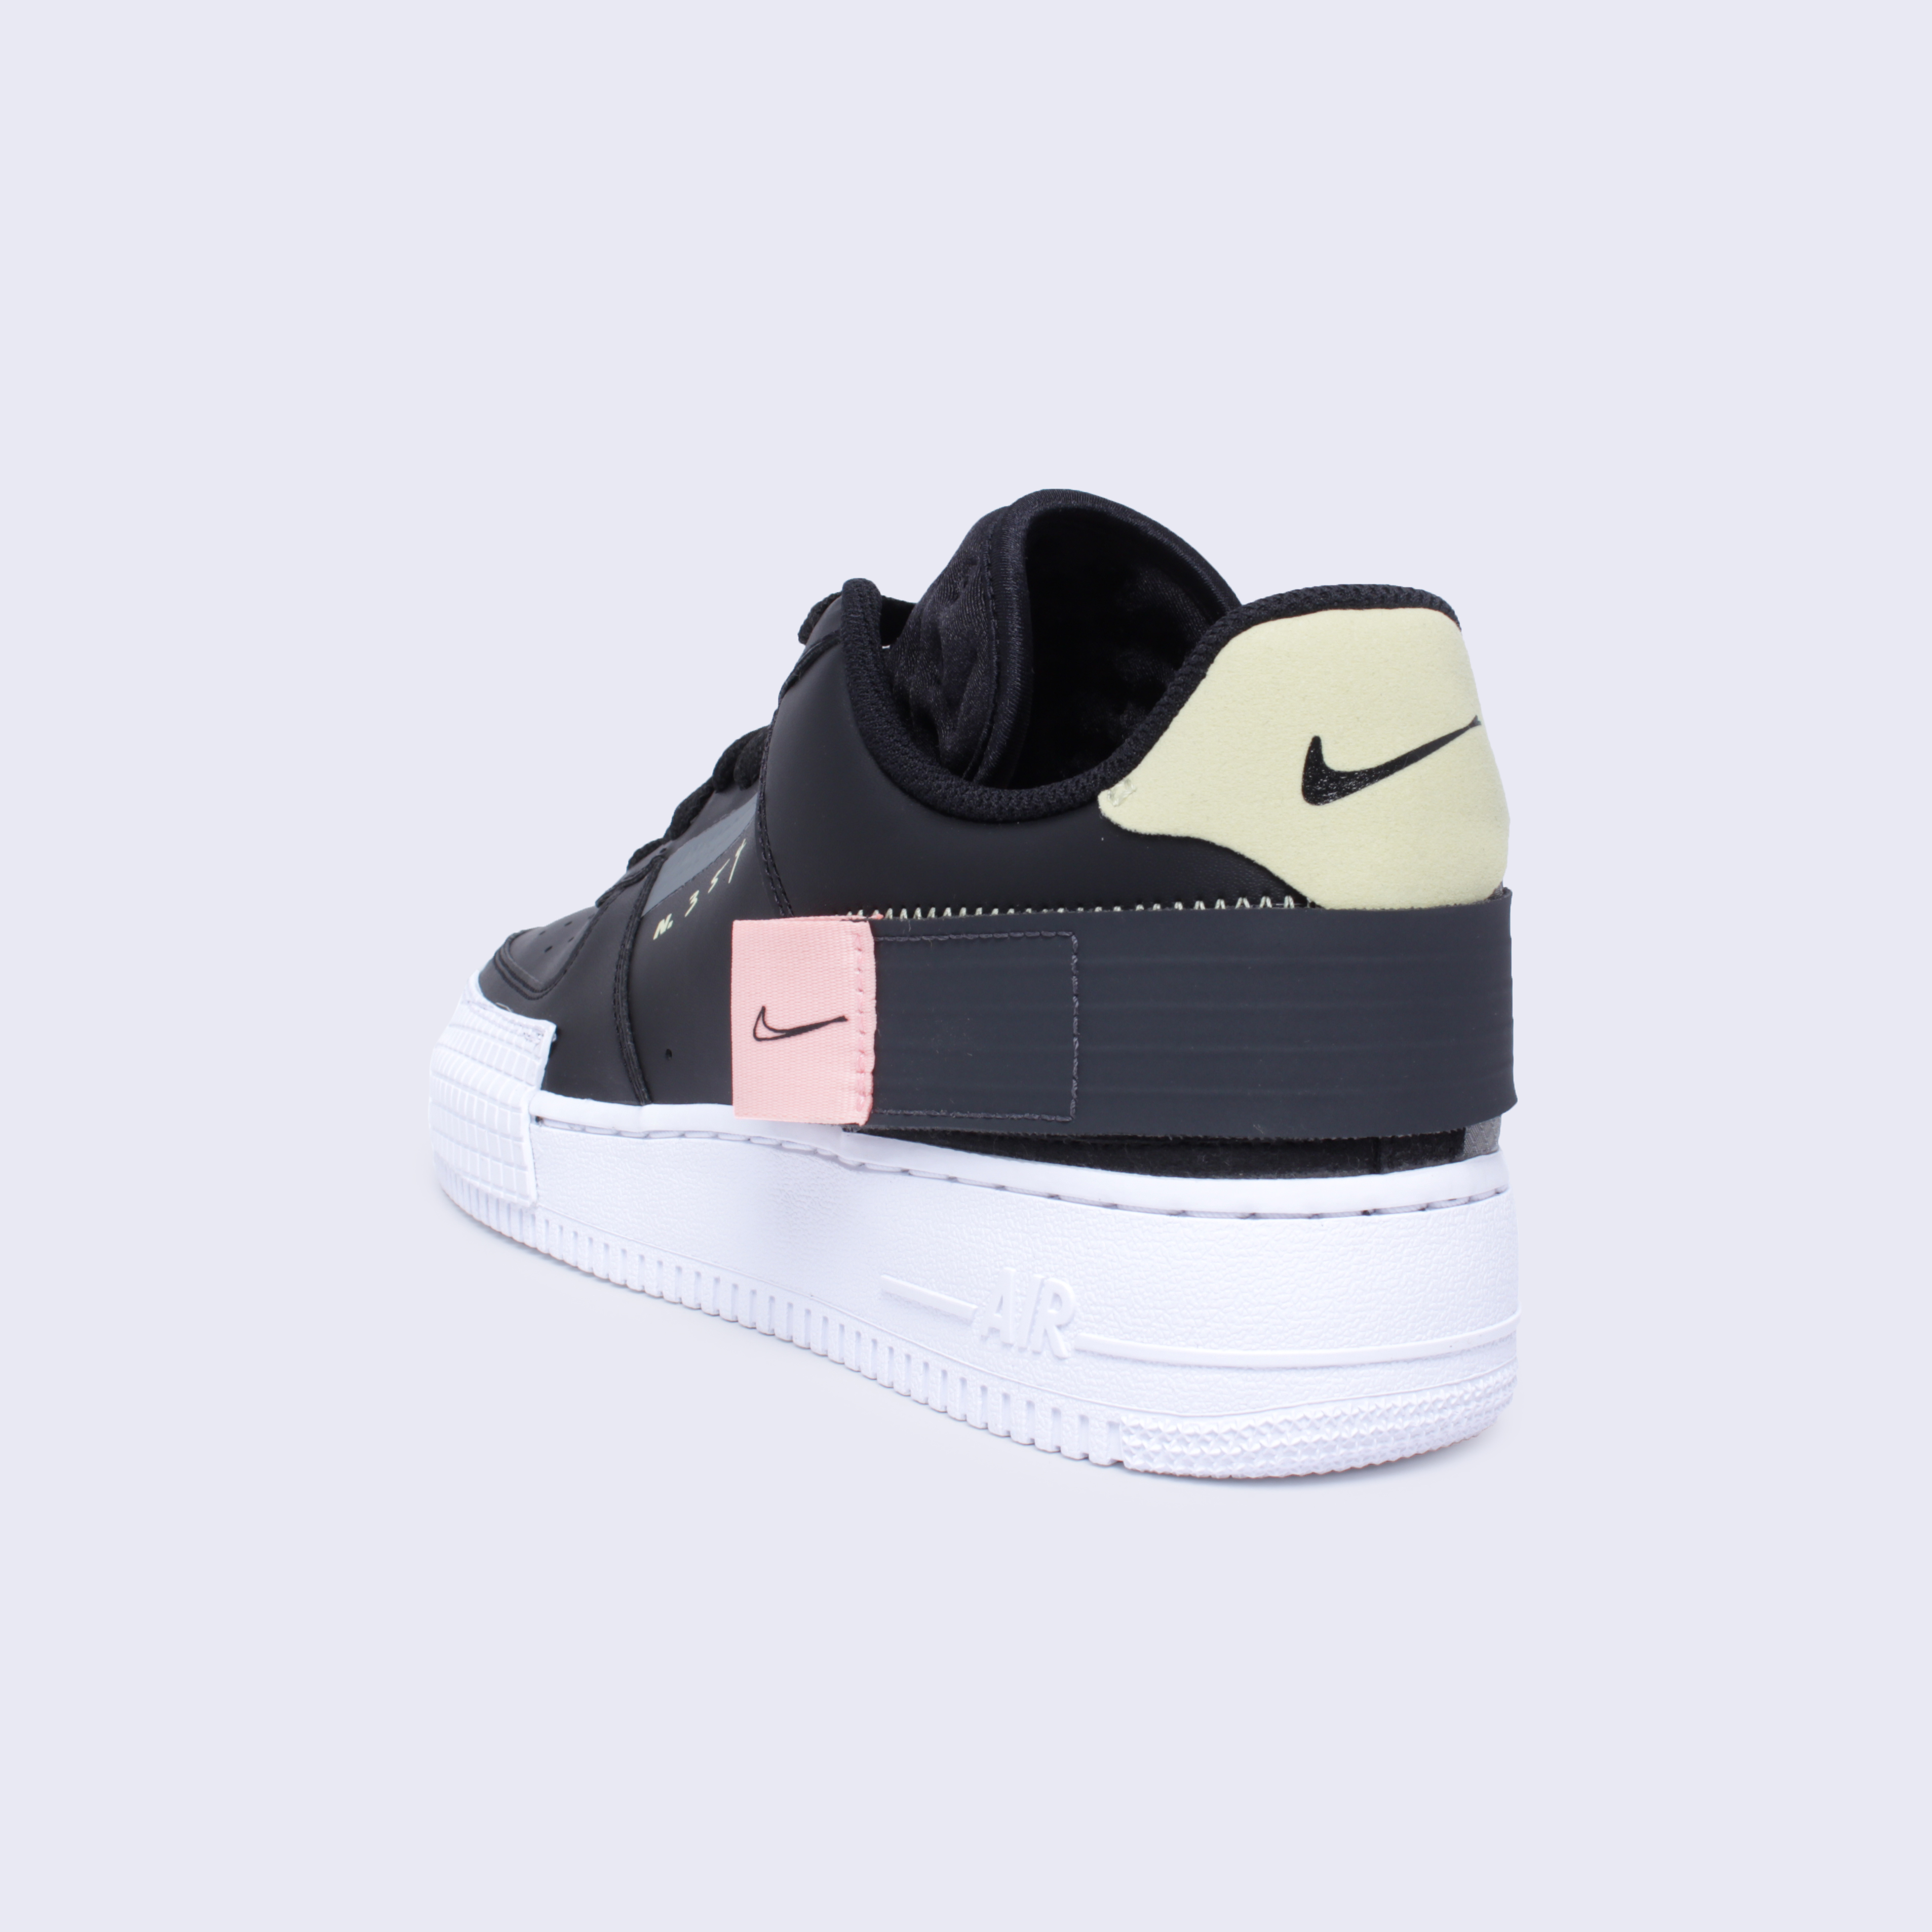 Nike N. 354 Collection Air Force 1 Type 'BlackPink Tint